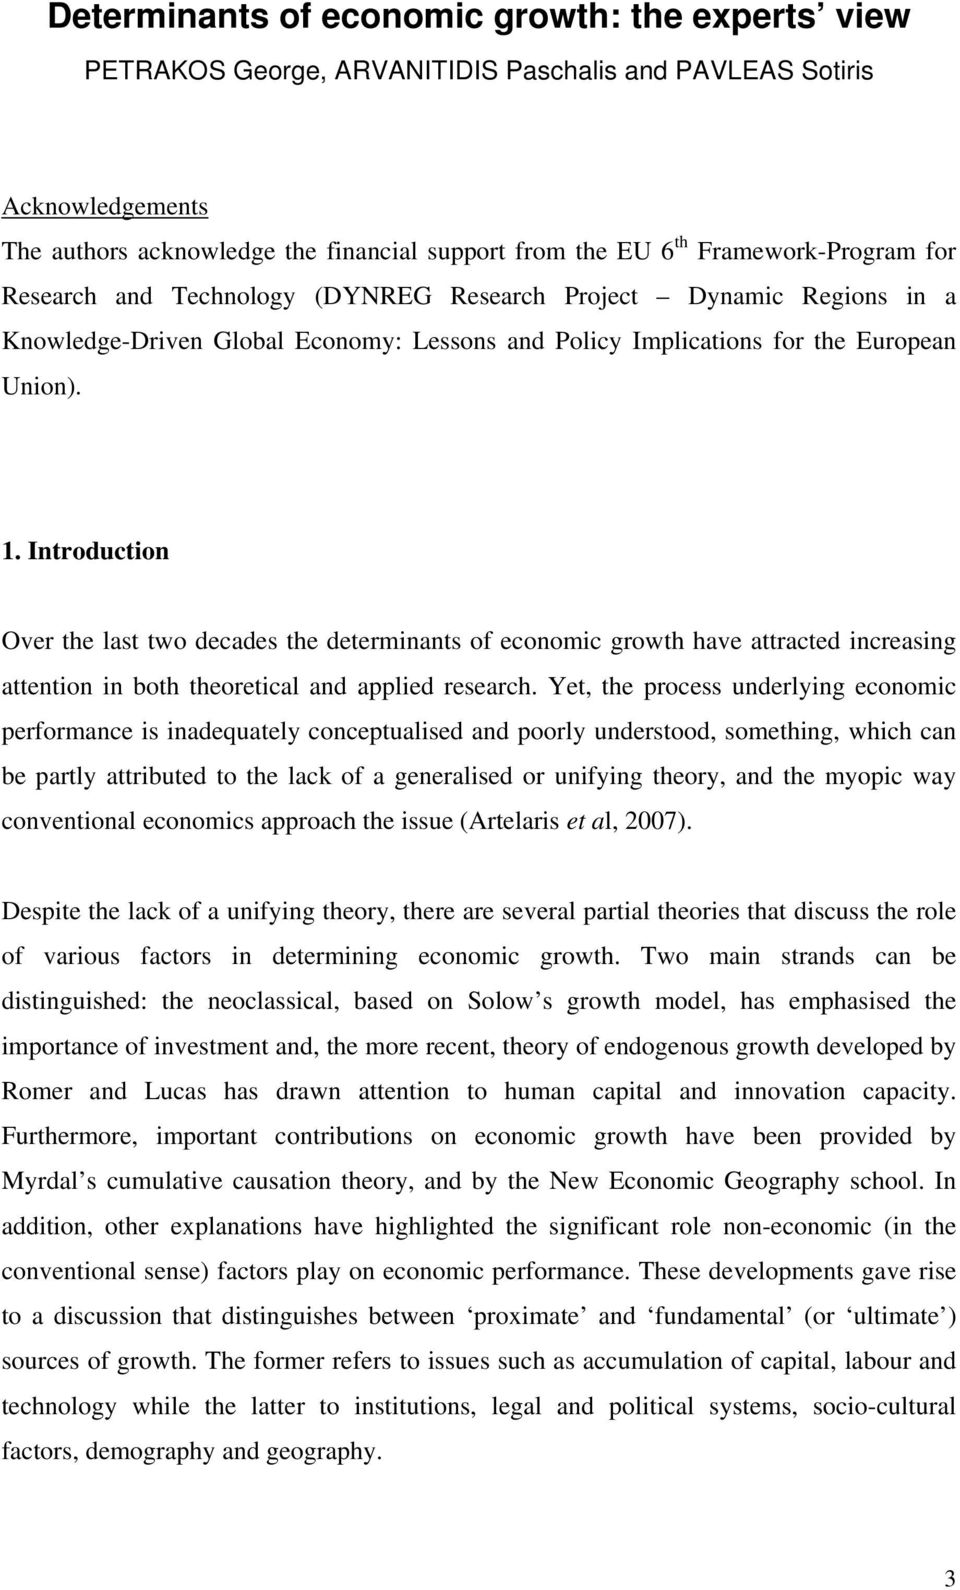 Introduction Over the last two decades the determinants of economic growth have attracted increasing attention in both theoretical and applied research.